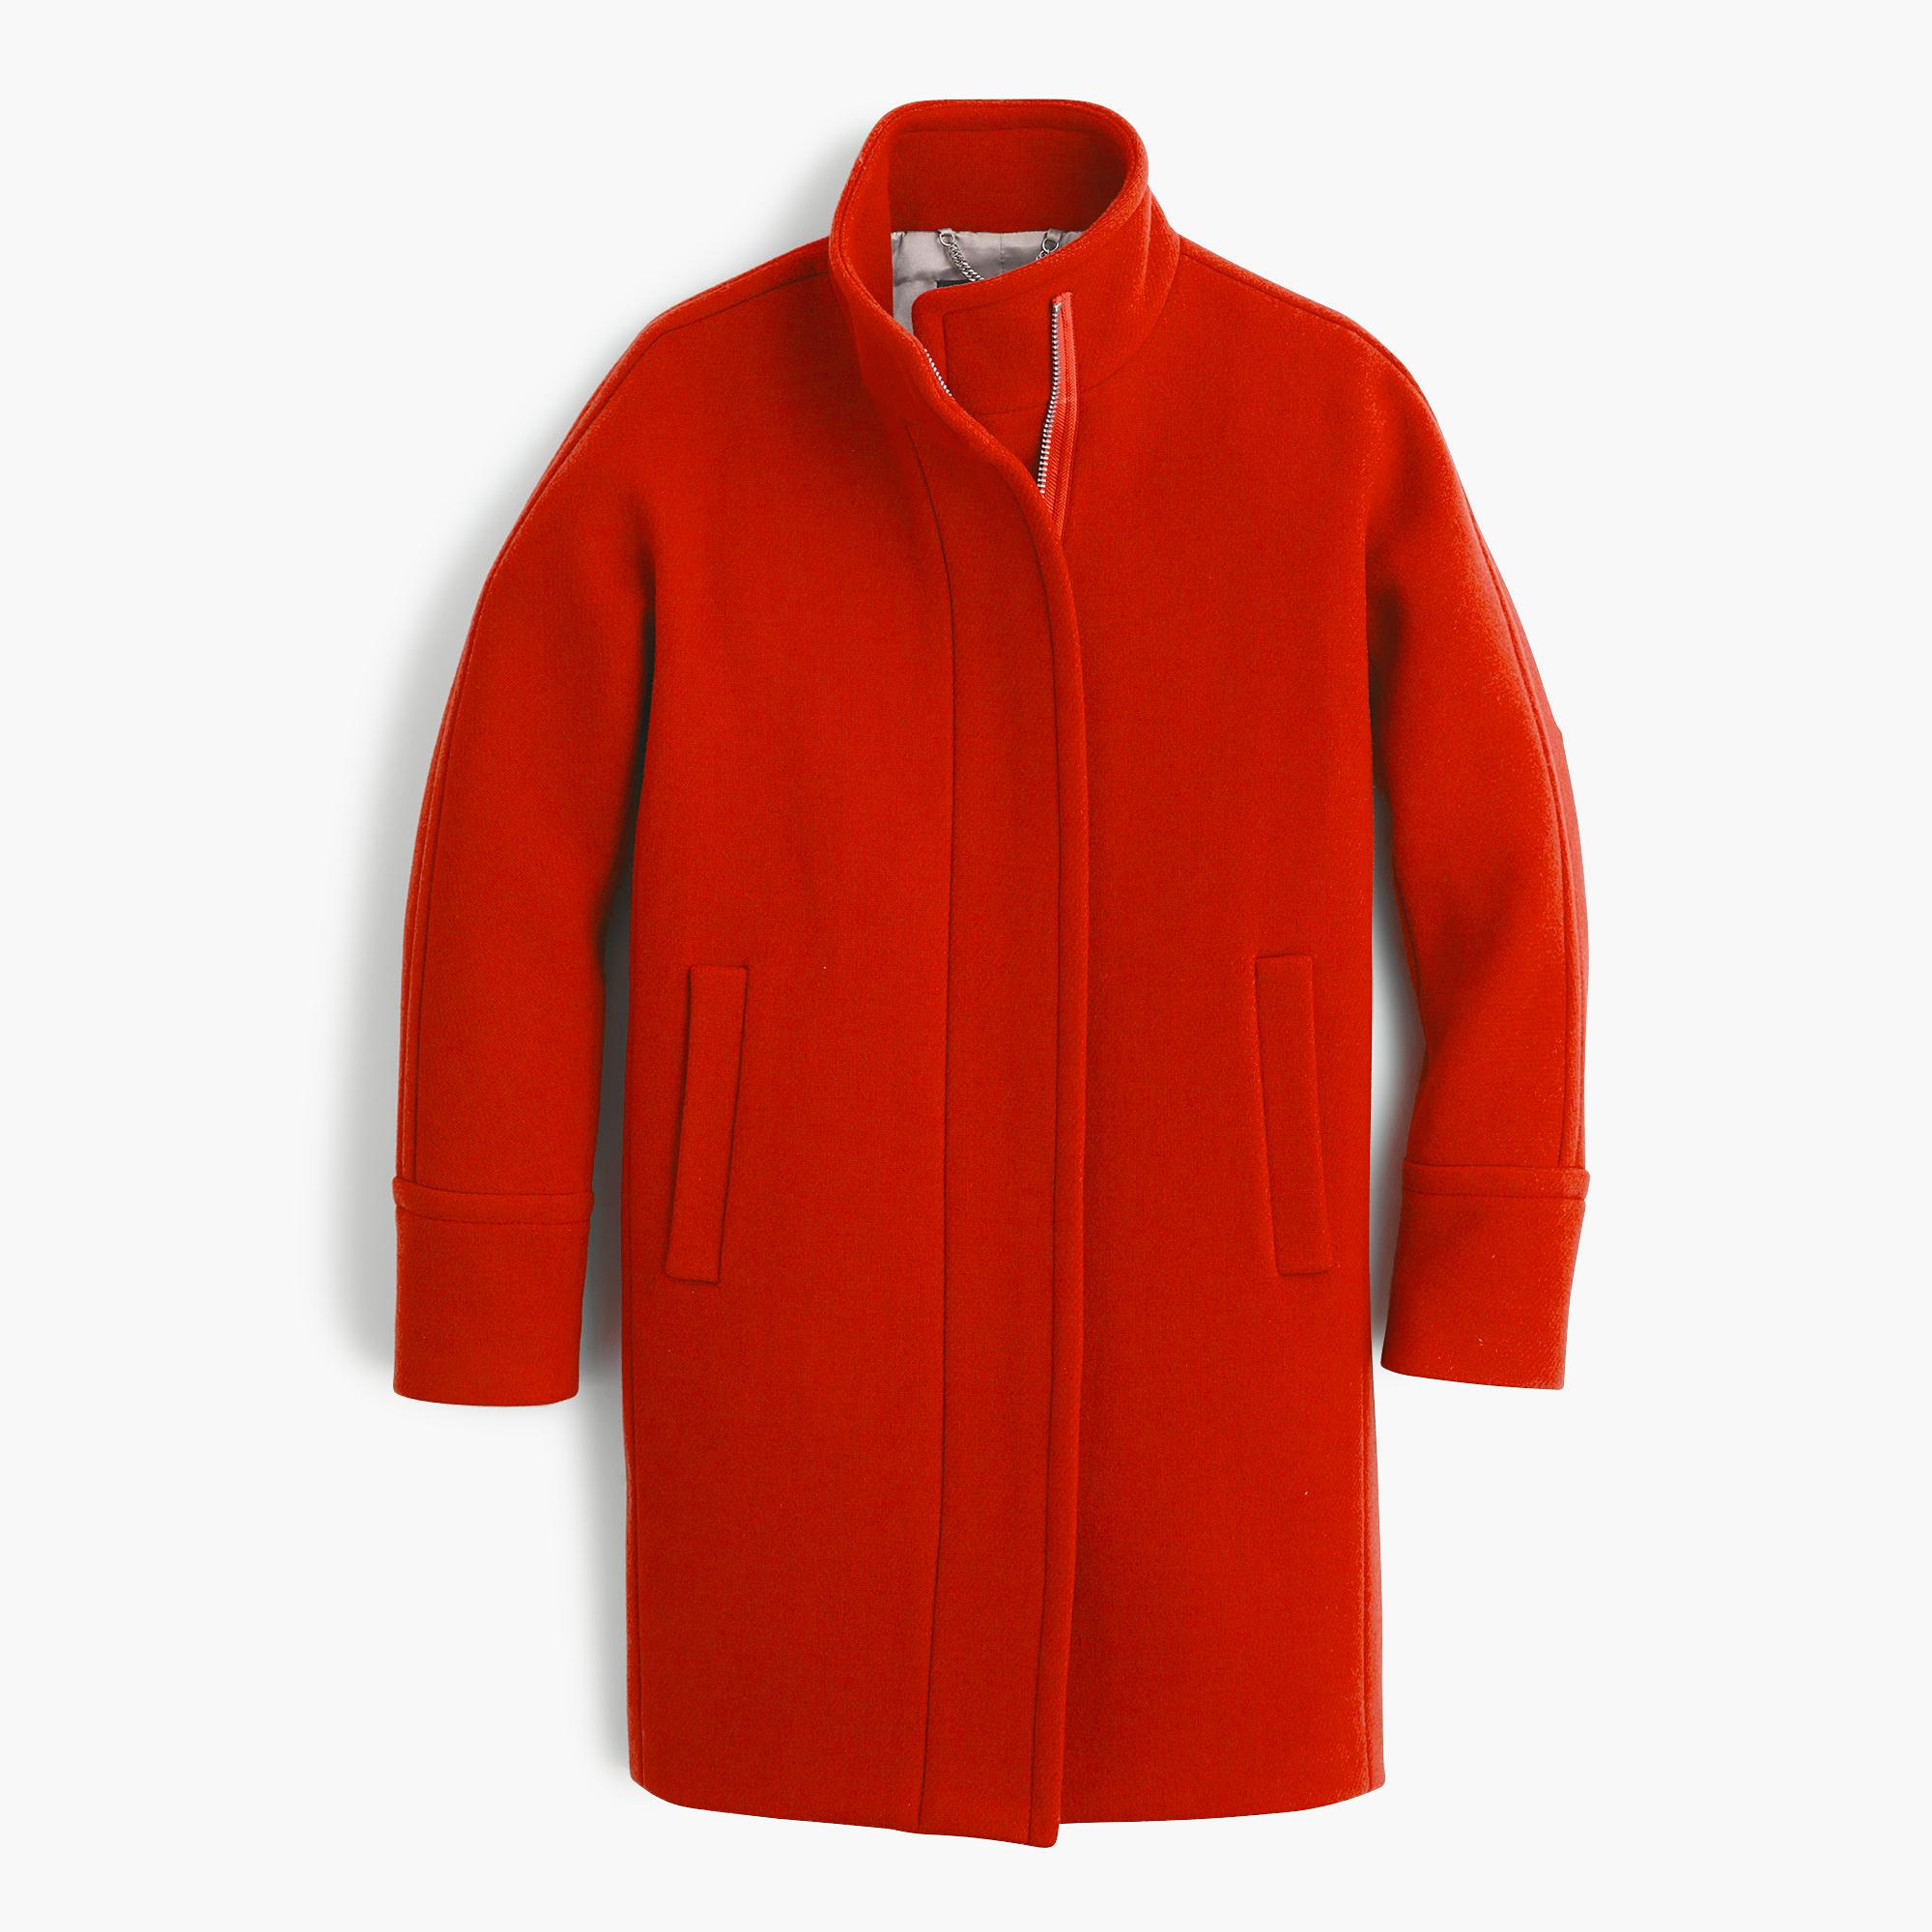 Cocoon München J.crew Wool Stadium-cloth Cocoon Coat In Red - Lyst